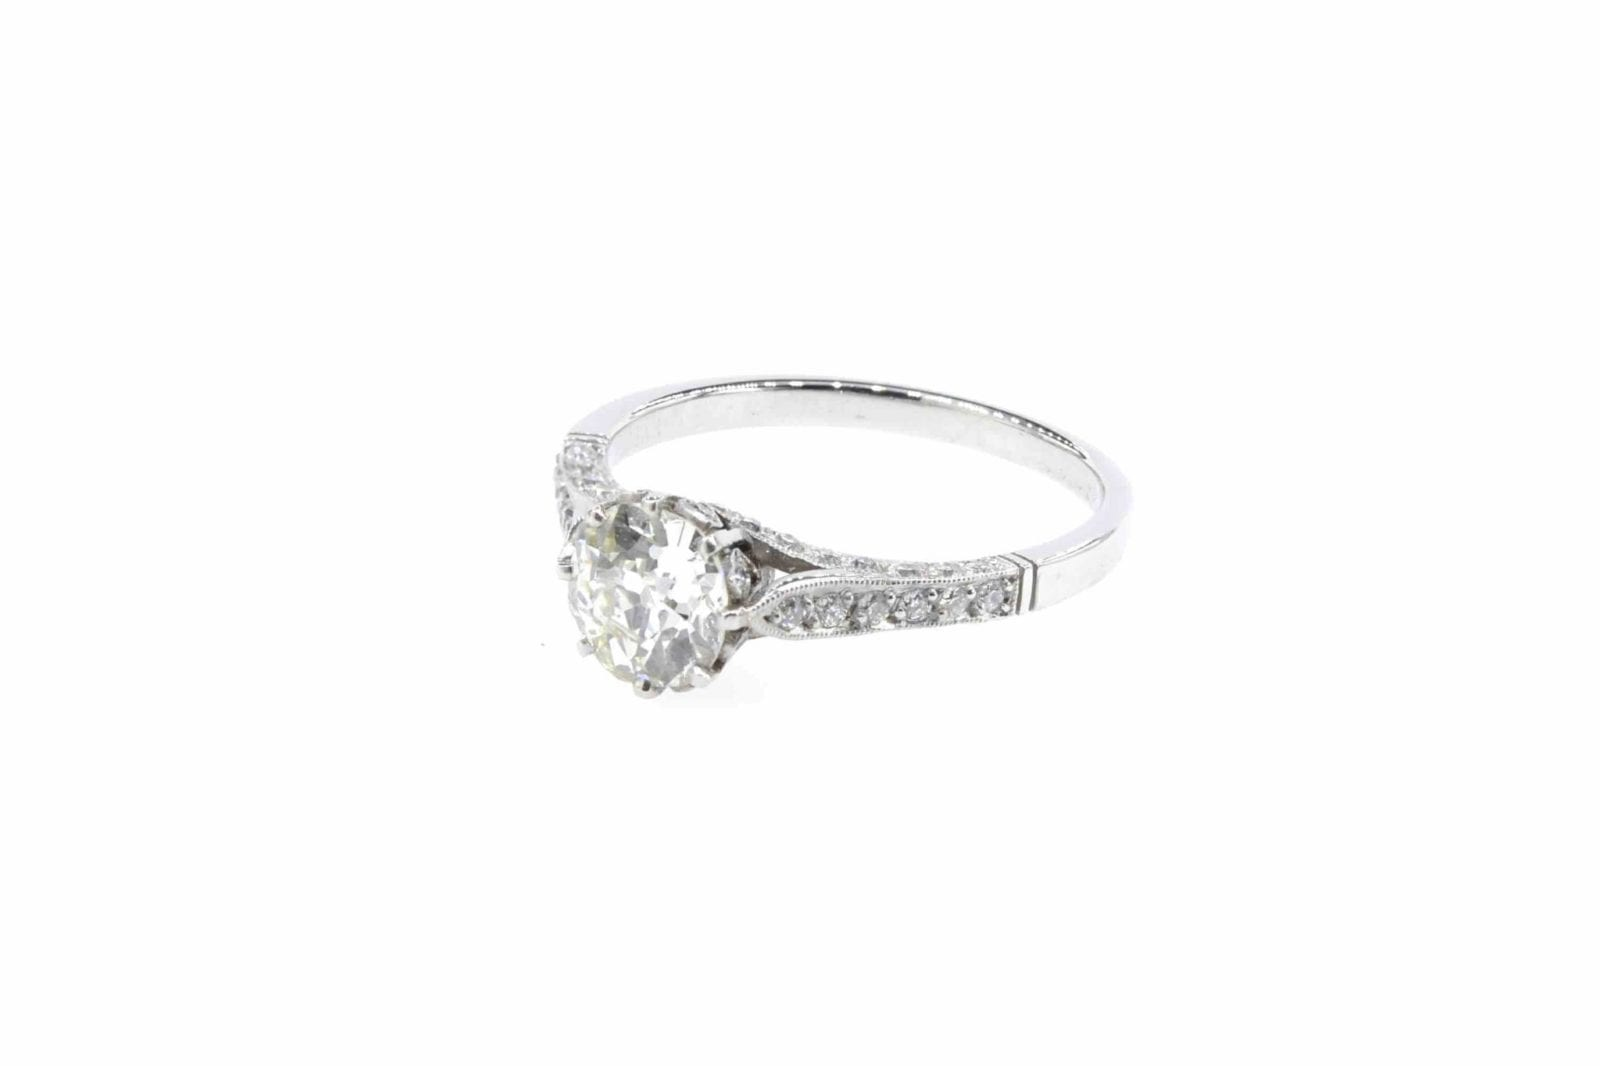 Bague solitaire diamants en platine